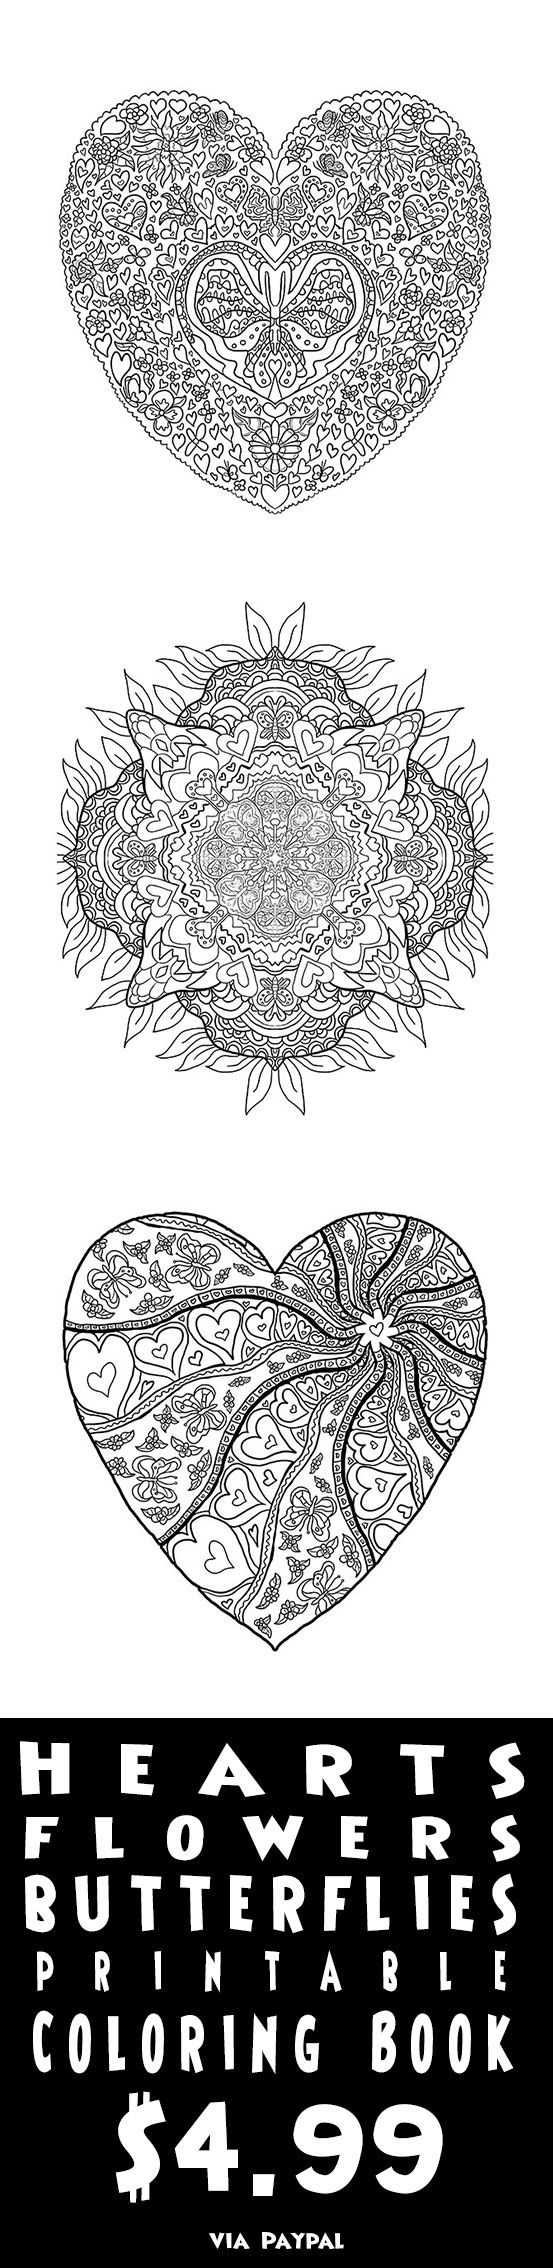 Heart flower coloring pages - Relax And Unwind With 25 Pages Of Heart Flower And Butterfly Coloring Sheets